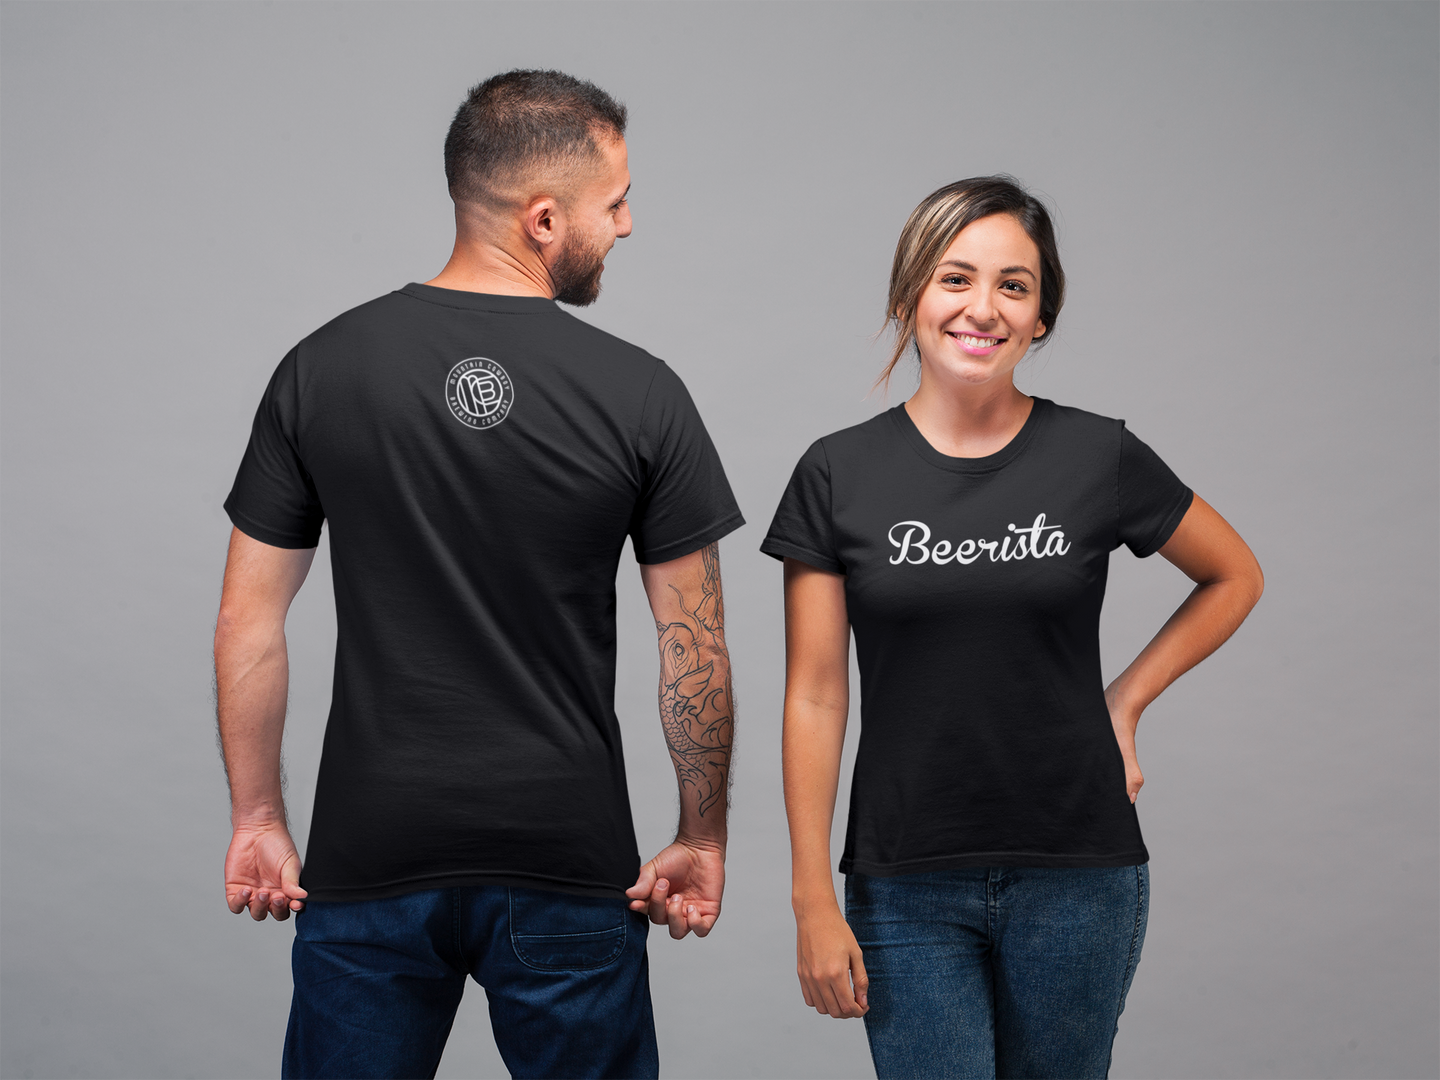 Women's Short-Sleeve Beerista T-Shirt